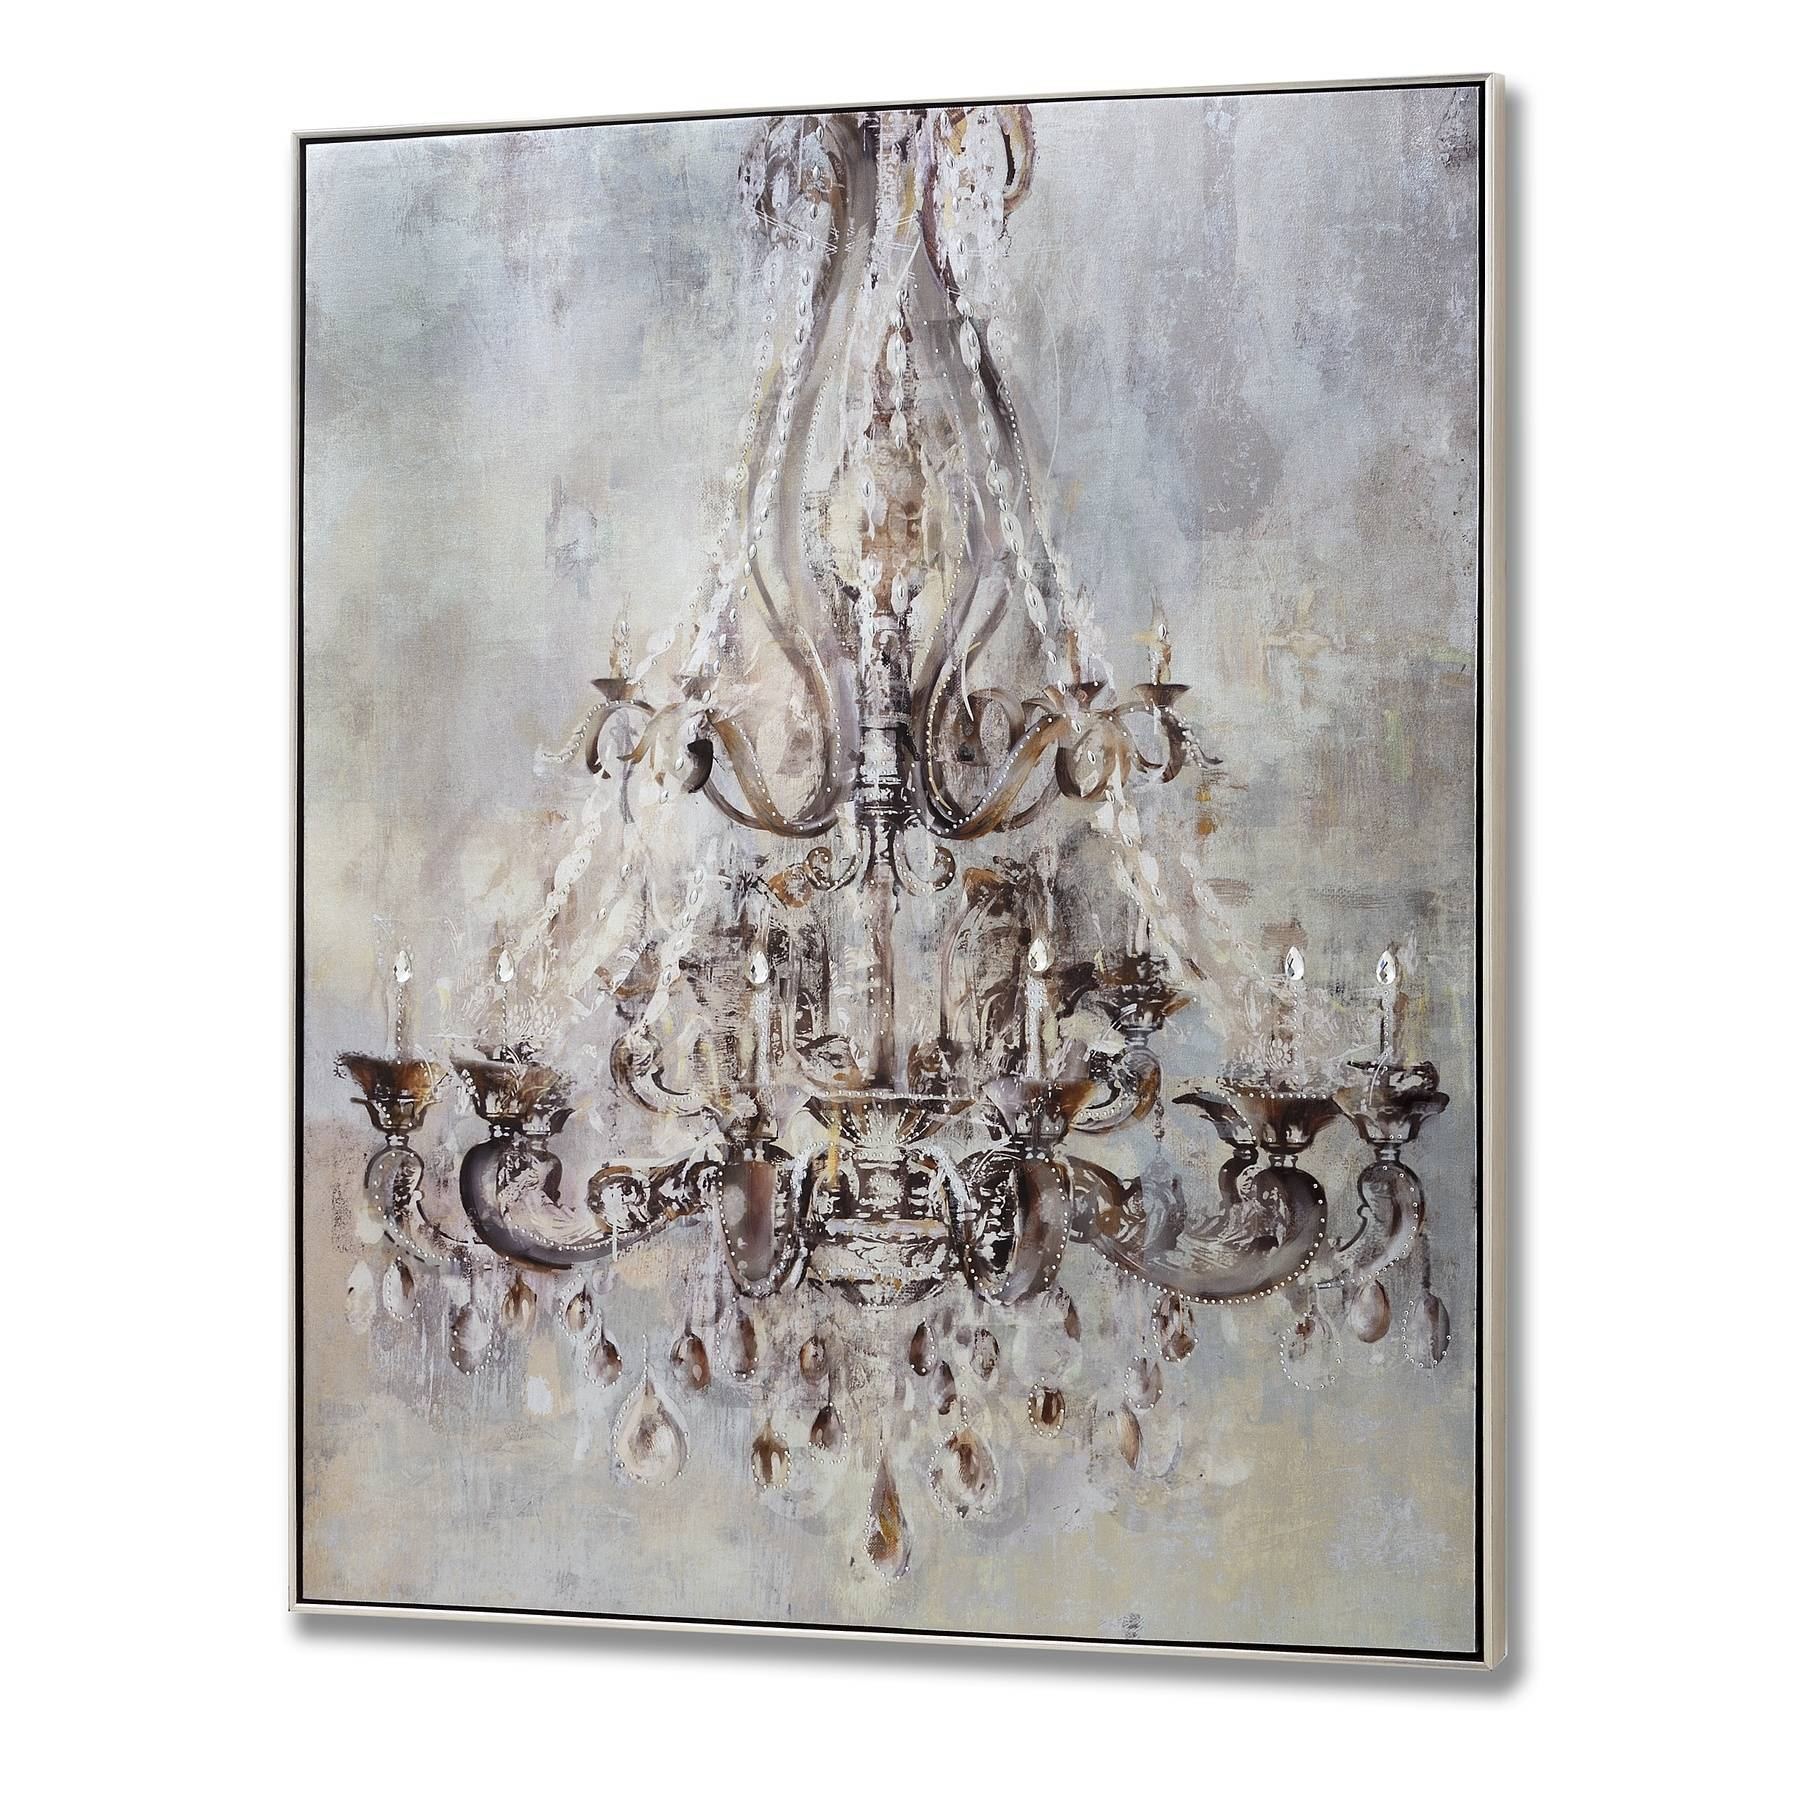 Framed Metalic Chandelier Wall Art With Metal Studs From Hill Pertaining To Most Recently Released Metal Framed Wall Art (View 7 of 20)